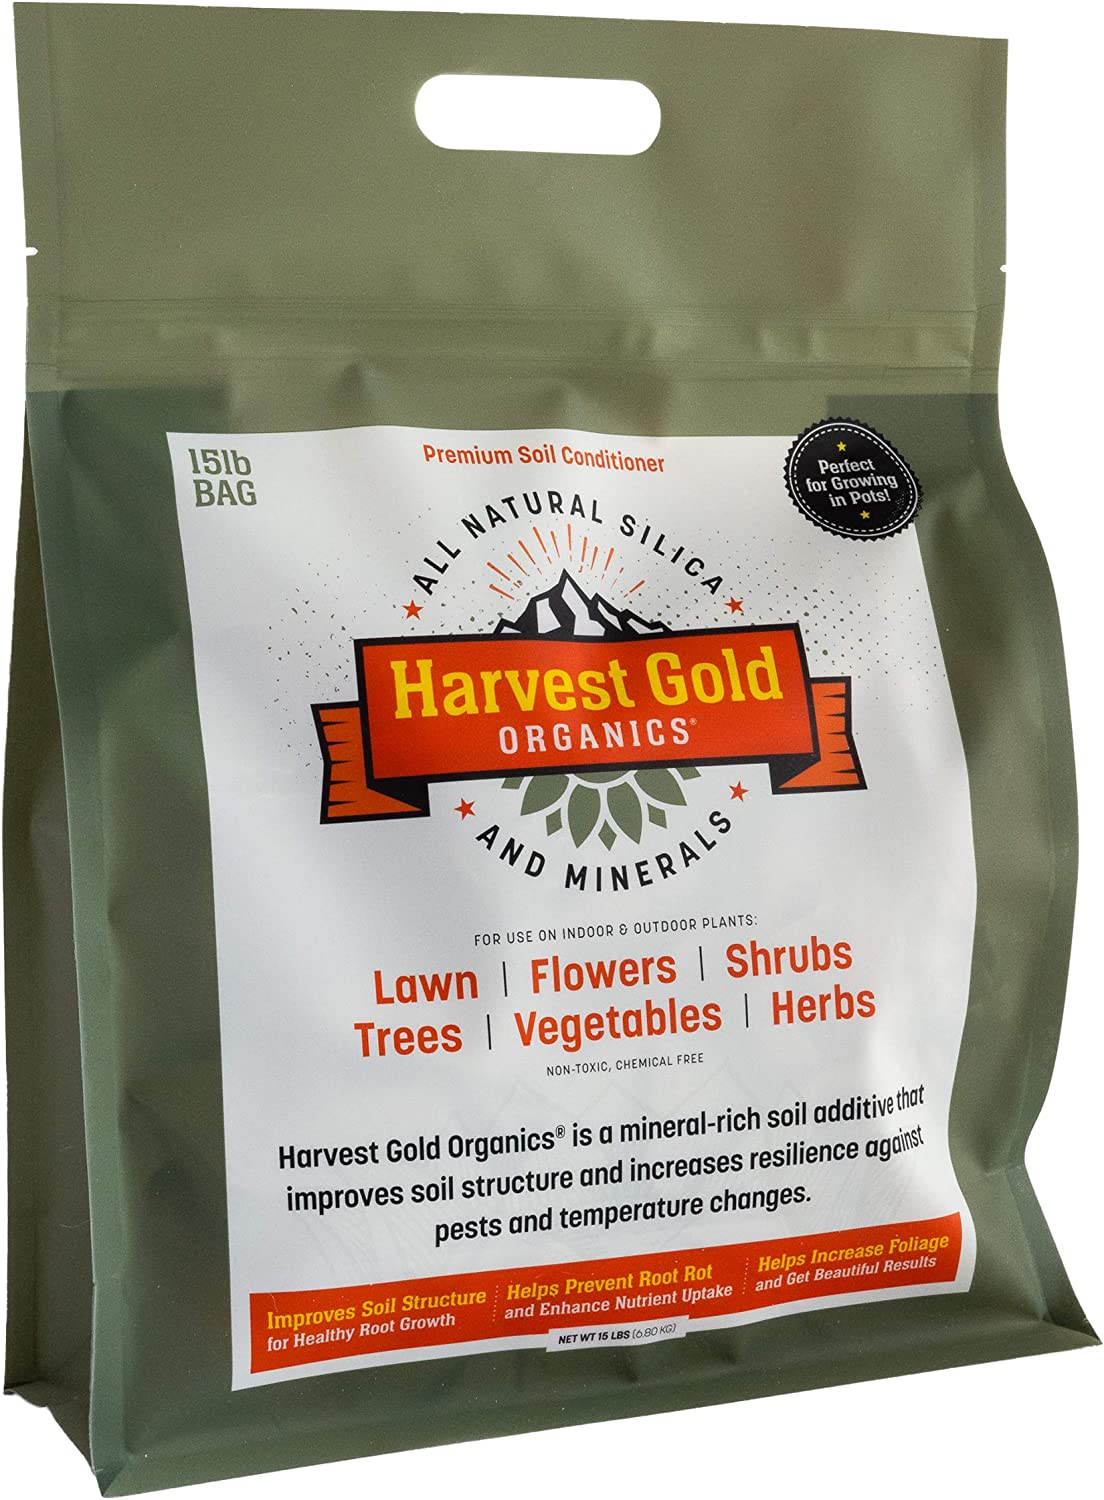 Harvest Gold Organics - Organic Soil Conditioner, Natural Soil Amendment for Houseplants, Flowers, Lawns, Gardens and Trees, Provides Natural Silica and Micronutrients for Plants (15 Pound Bag)